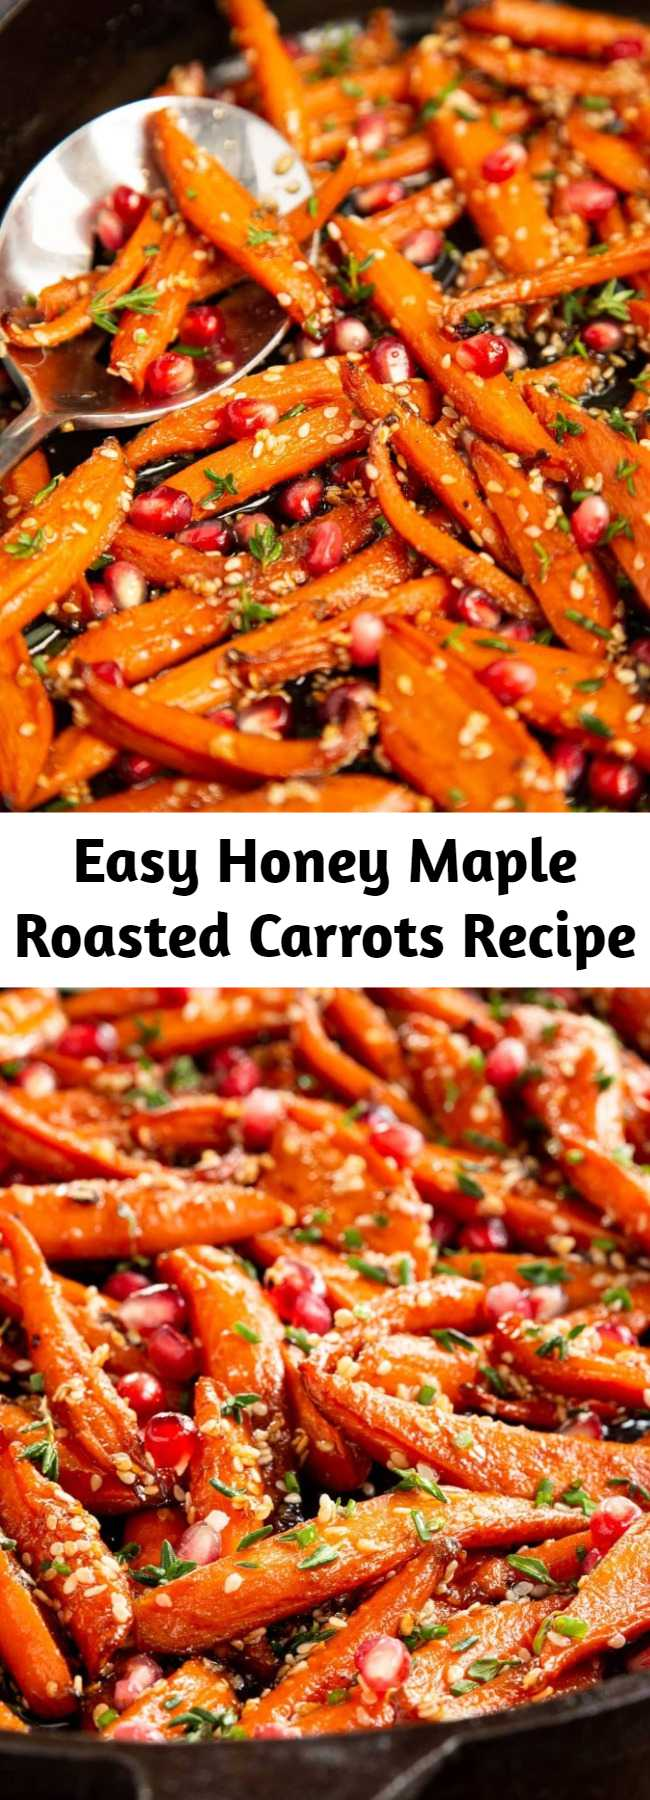 Easy Honey Maple Roasted Carrots Recipe - Transform the everyday humble carrot into a spectacular side with this easy, make-ahead Honey Maple Roasted Carrots recipe!